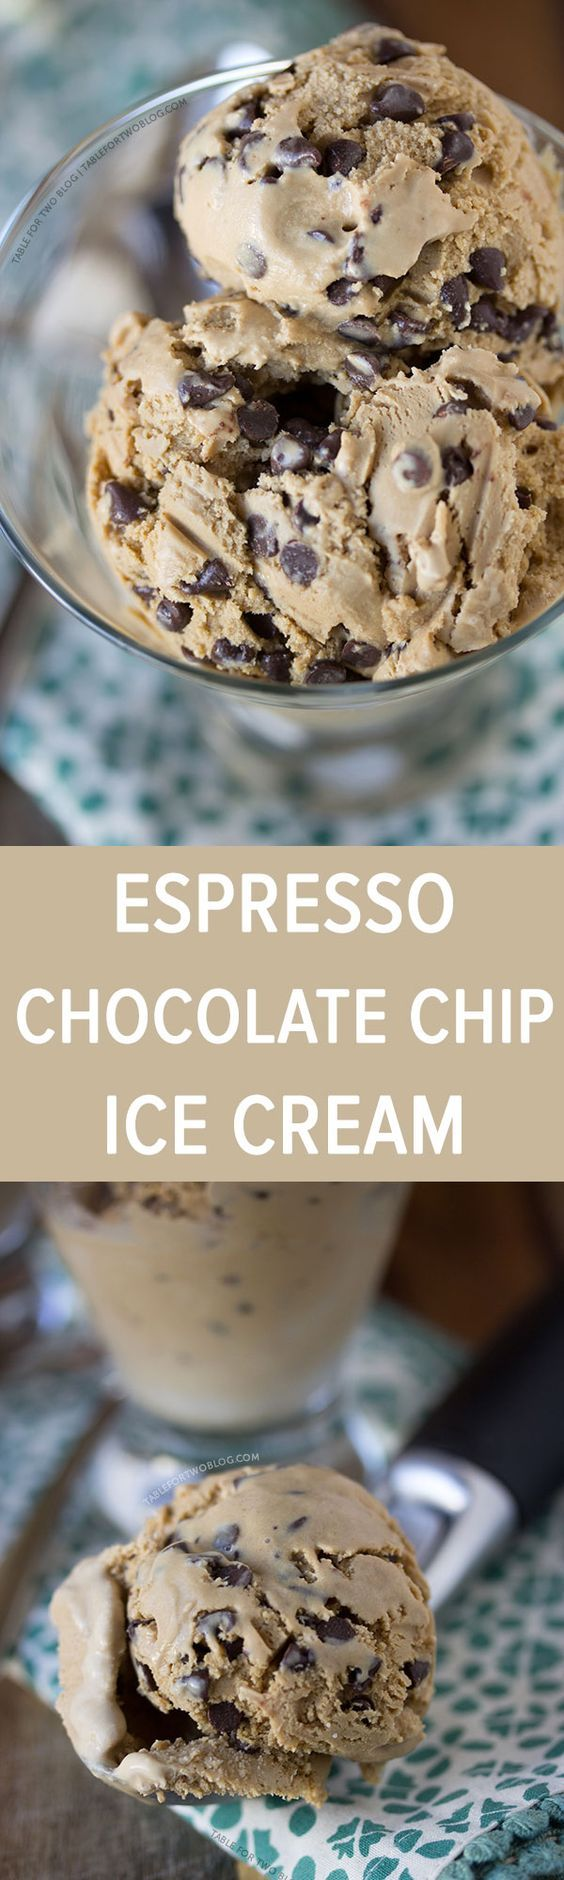 Beth said this was really good Espresso Chocolate Chip Ice Cream from www.tablefortwoblog.com